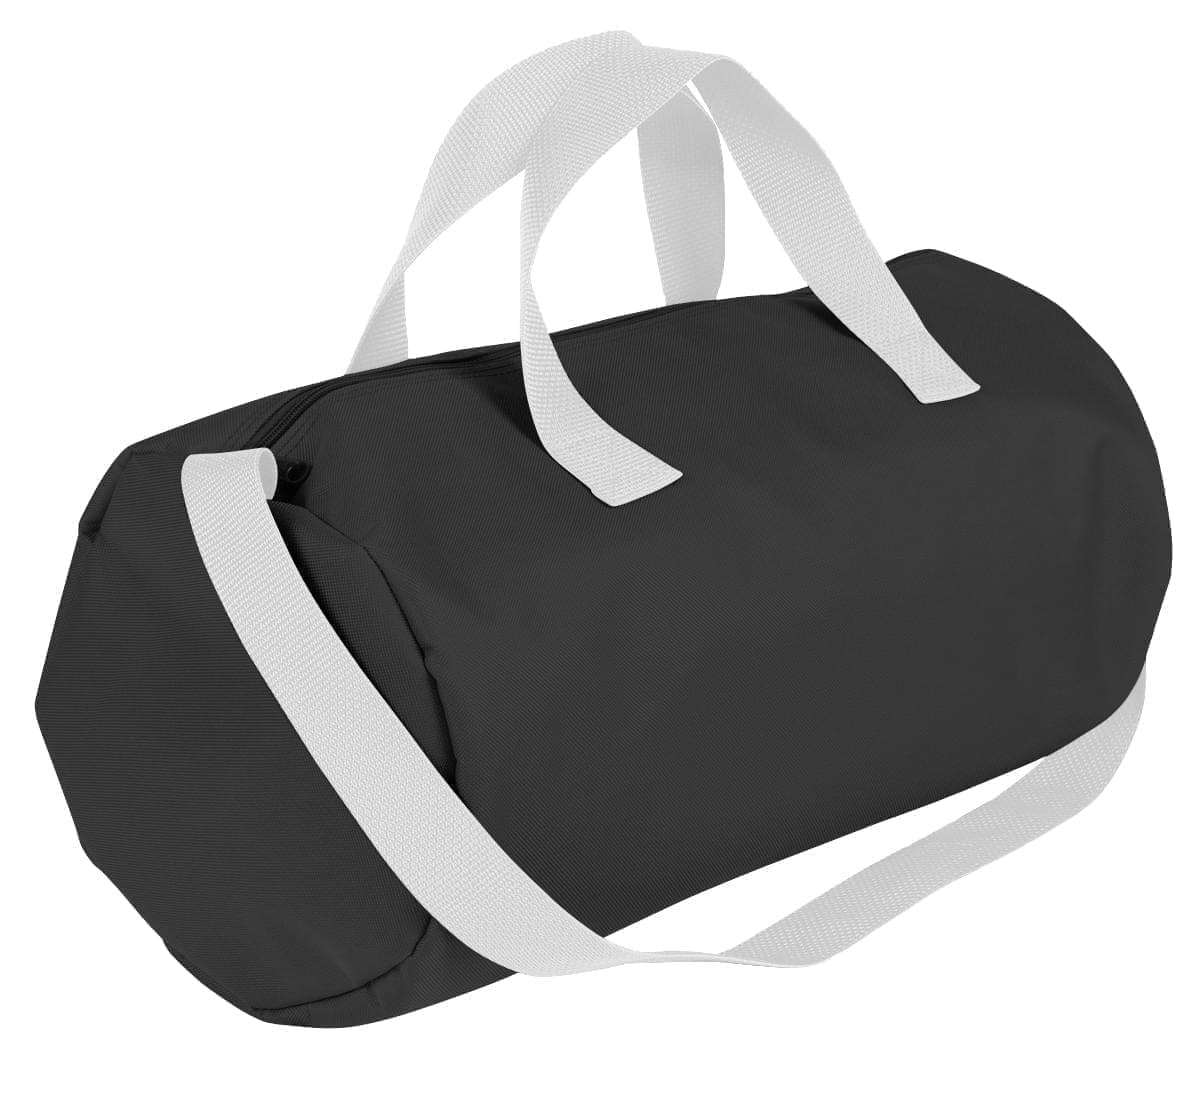 USA Made Nylon Poly Gym Roll Bags, Black-White, ROCX31AAO4